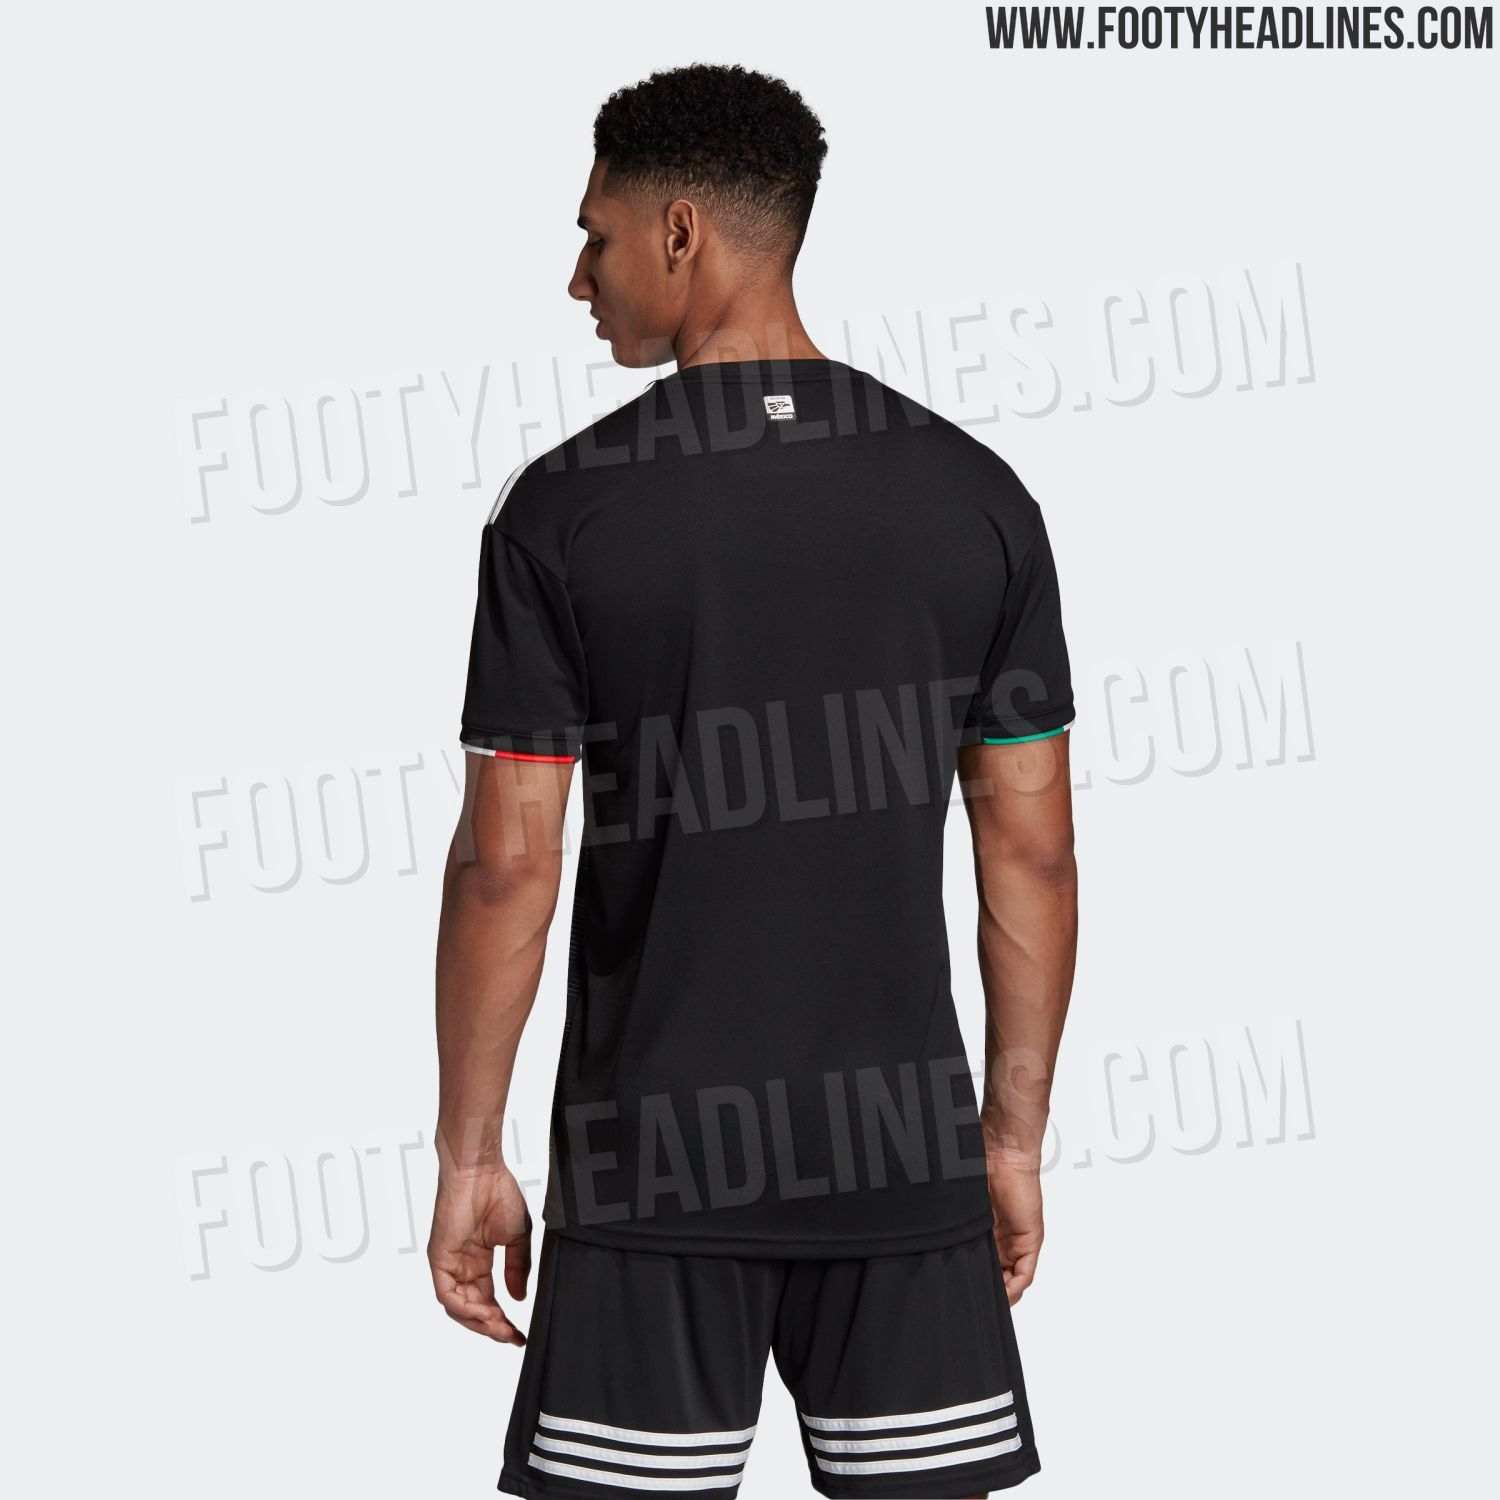 Leaked: Adidas 19 20 Kits To Feature Strange New Shorts 3